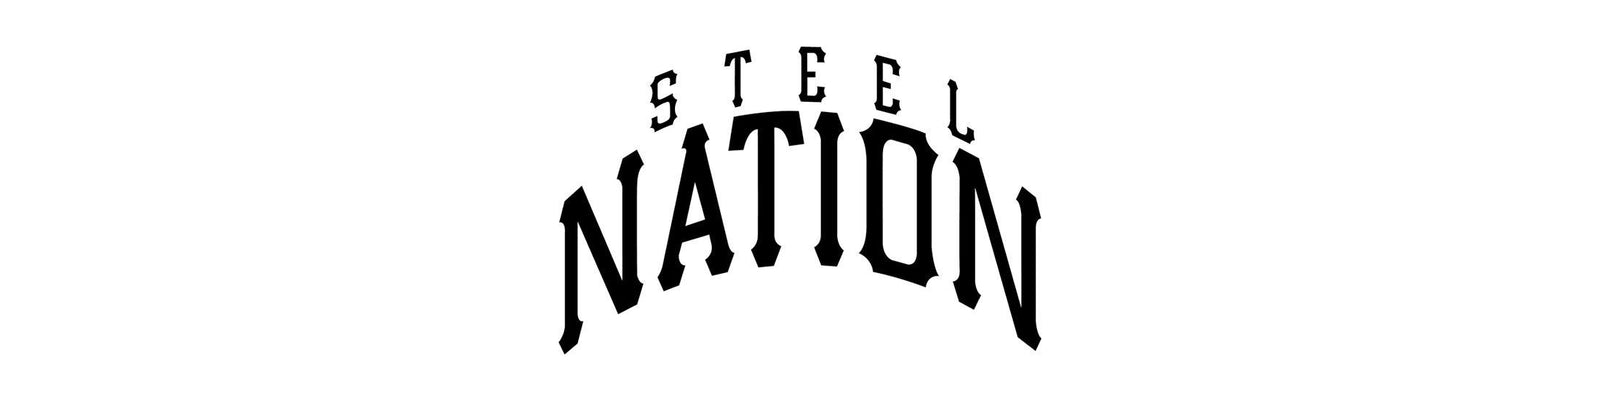 Steel Nation